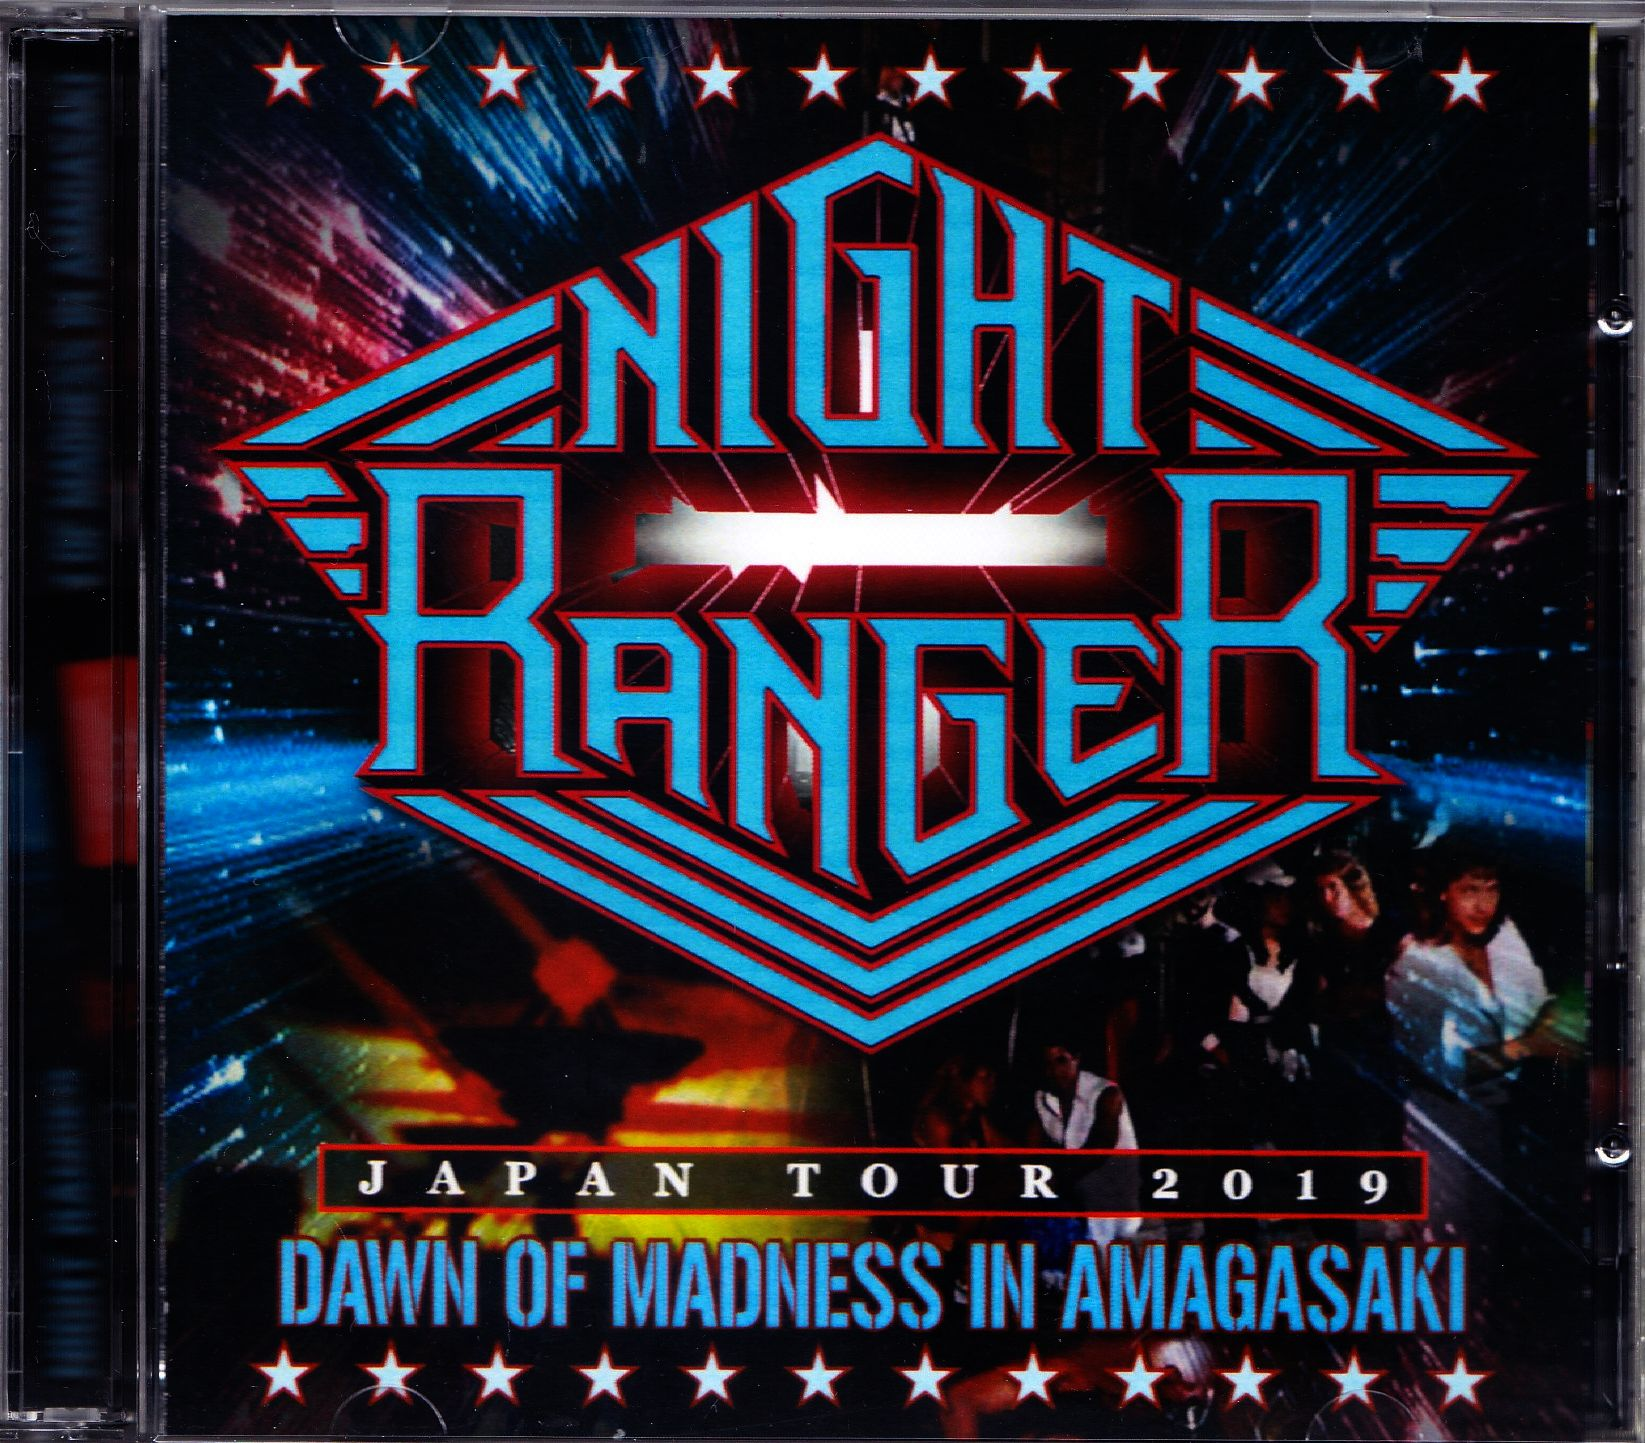 Night Ranger ナイト・レンジャー/Hyogo,Japan 2019